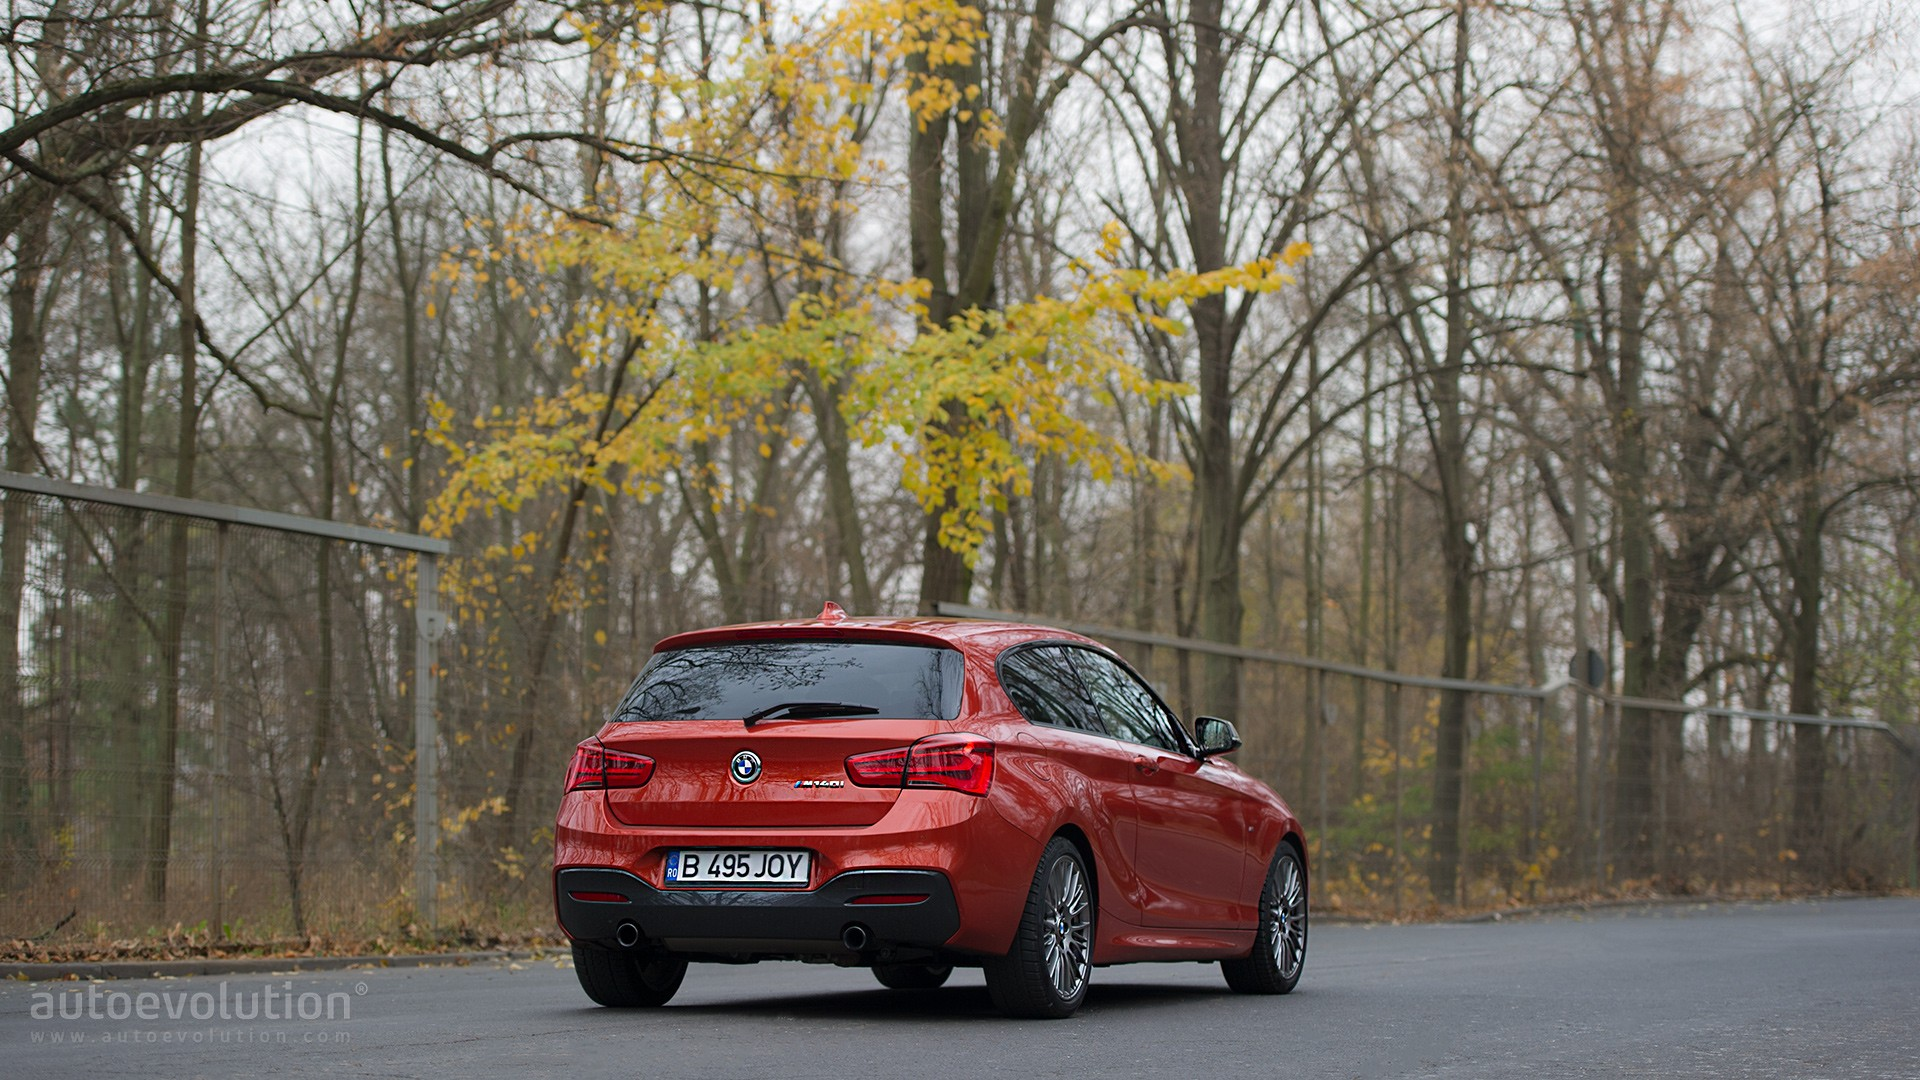 BMW 1 Series May Keep Rear Wheel Drive Version Without Postponing